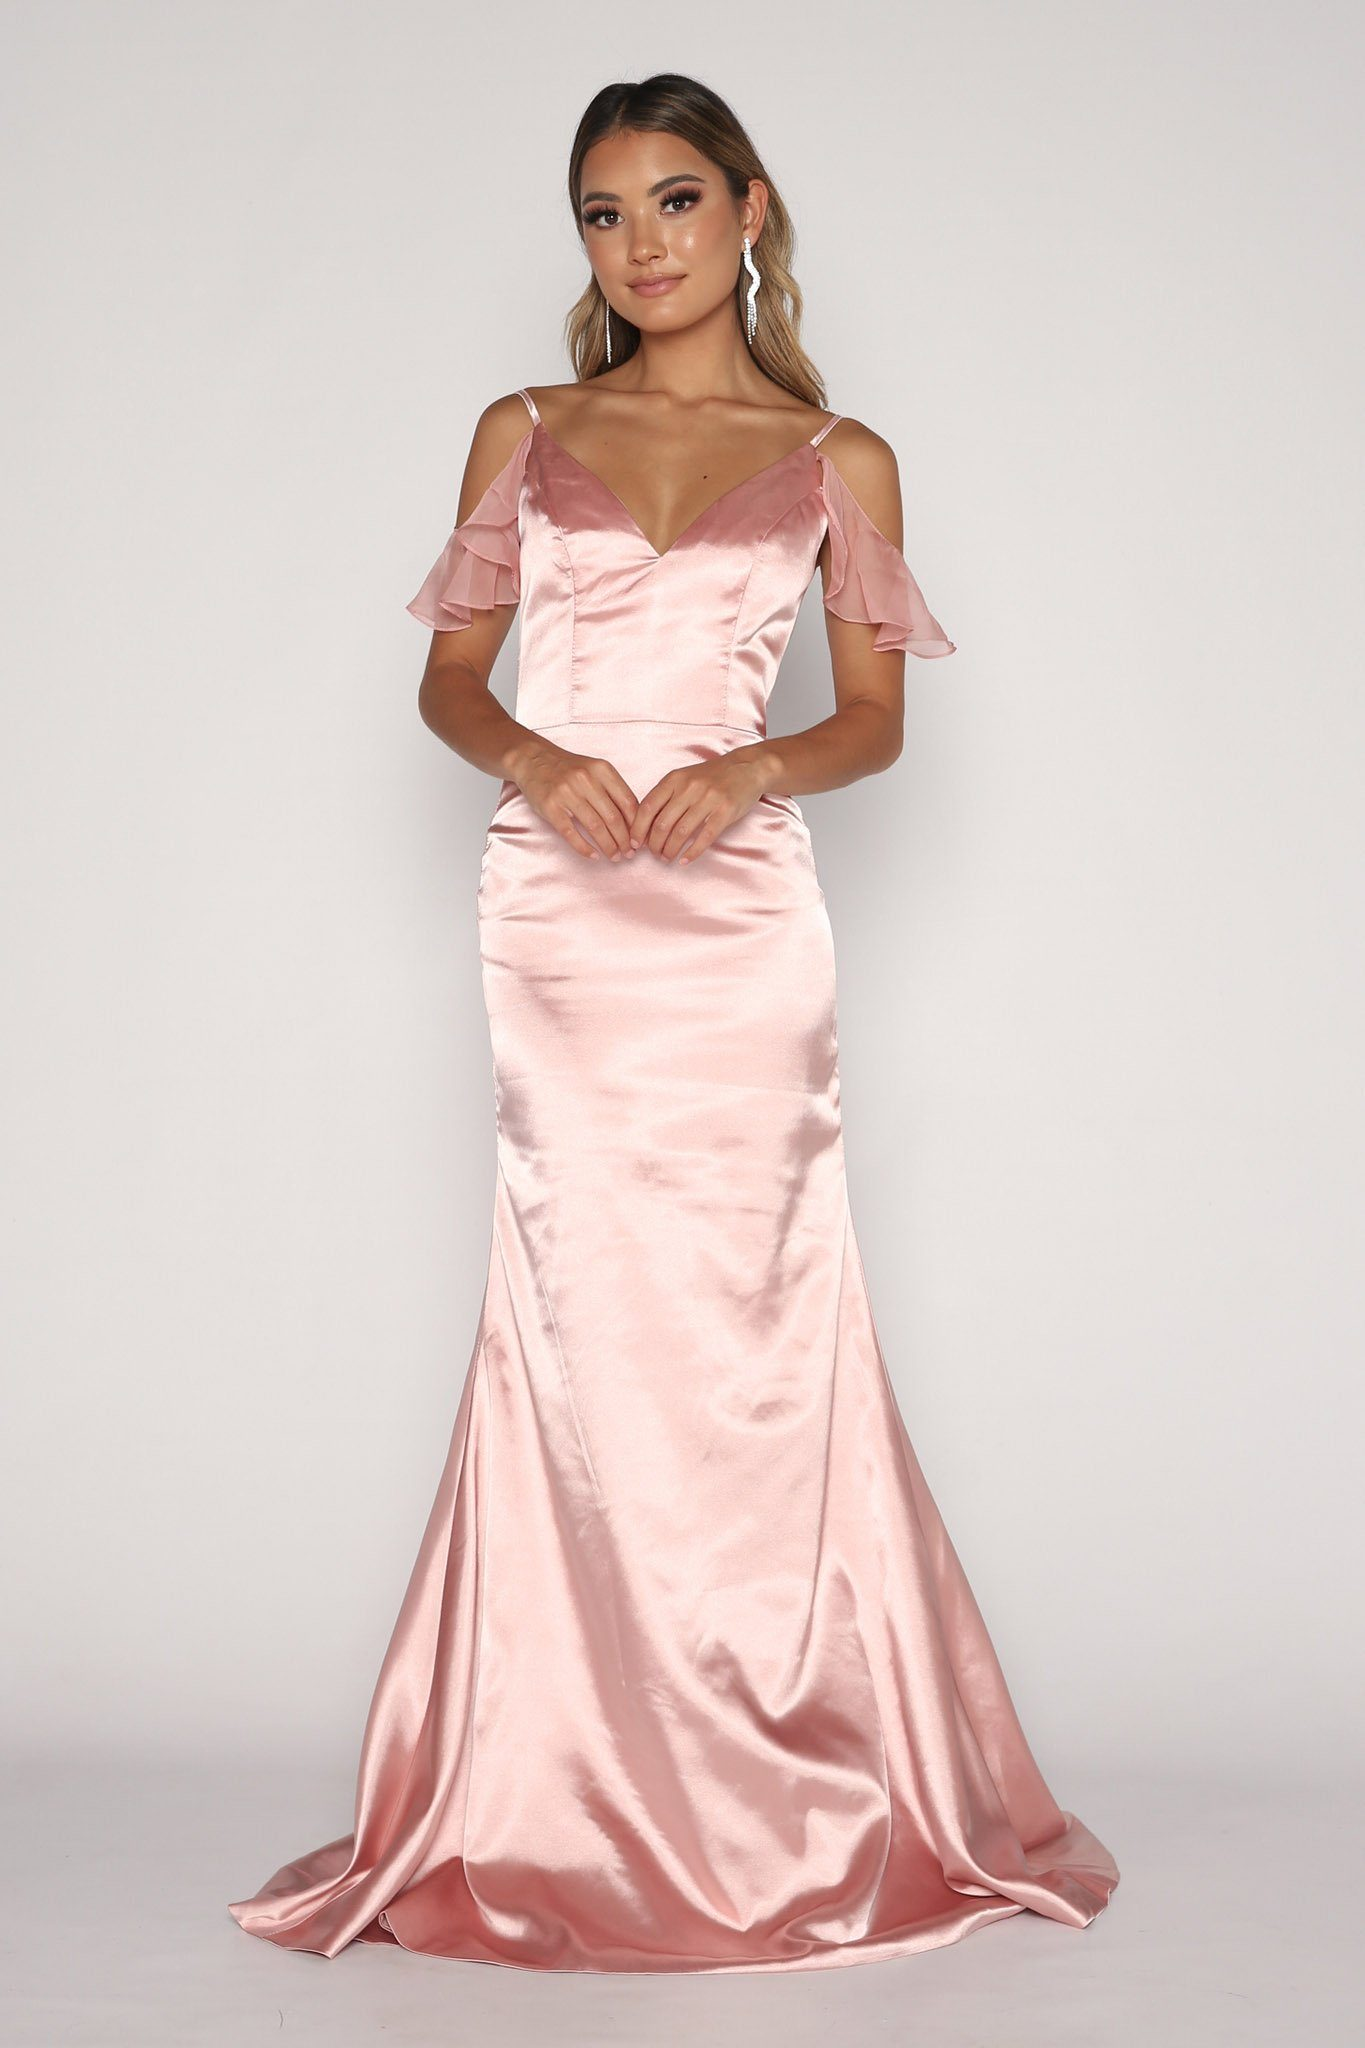 Light Pink Satin Floor Length Maxi Dress with V-neckline, Cascading Ruffle Sleeve Detail, Thin Shoulder Straps, Open Back and Fit and Flare Silhouette